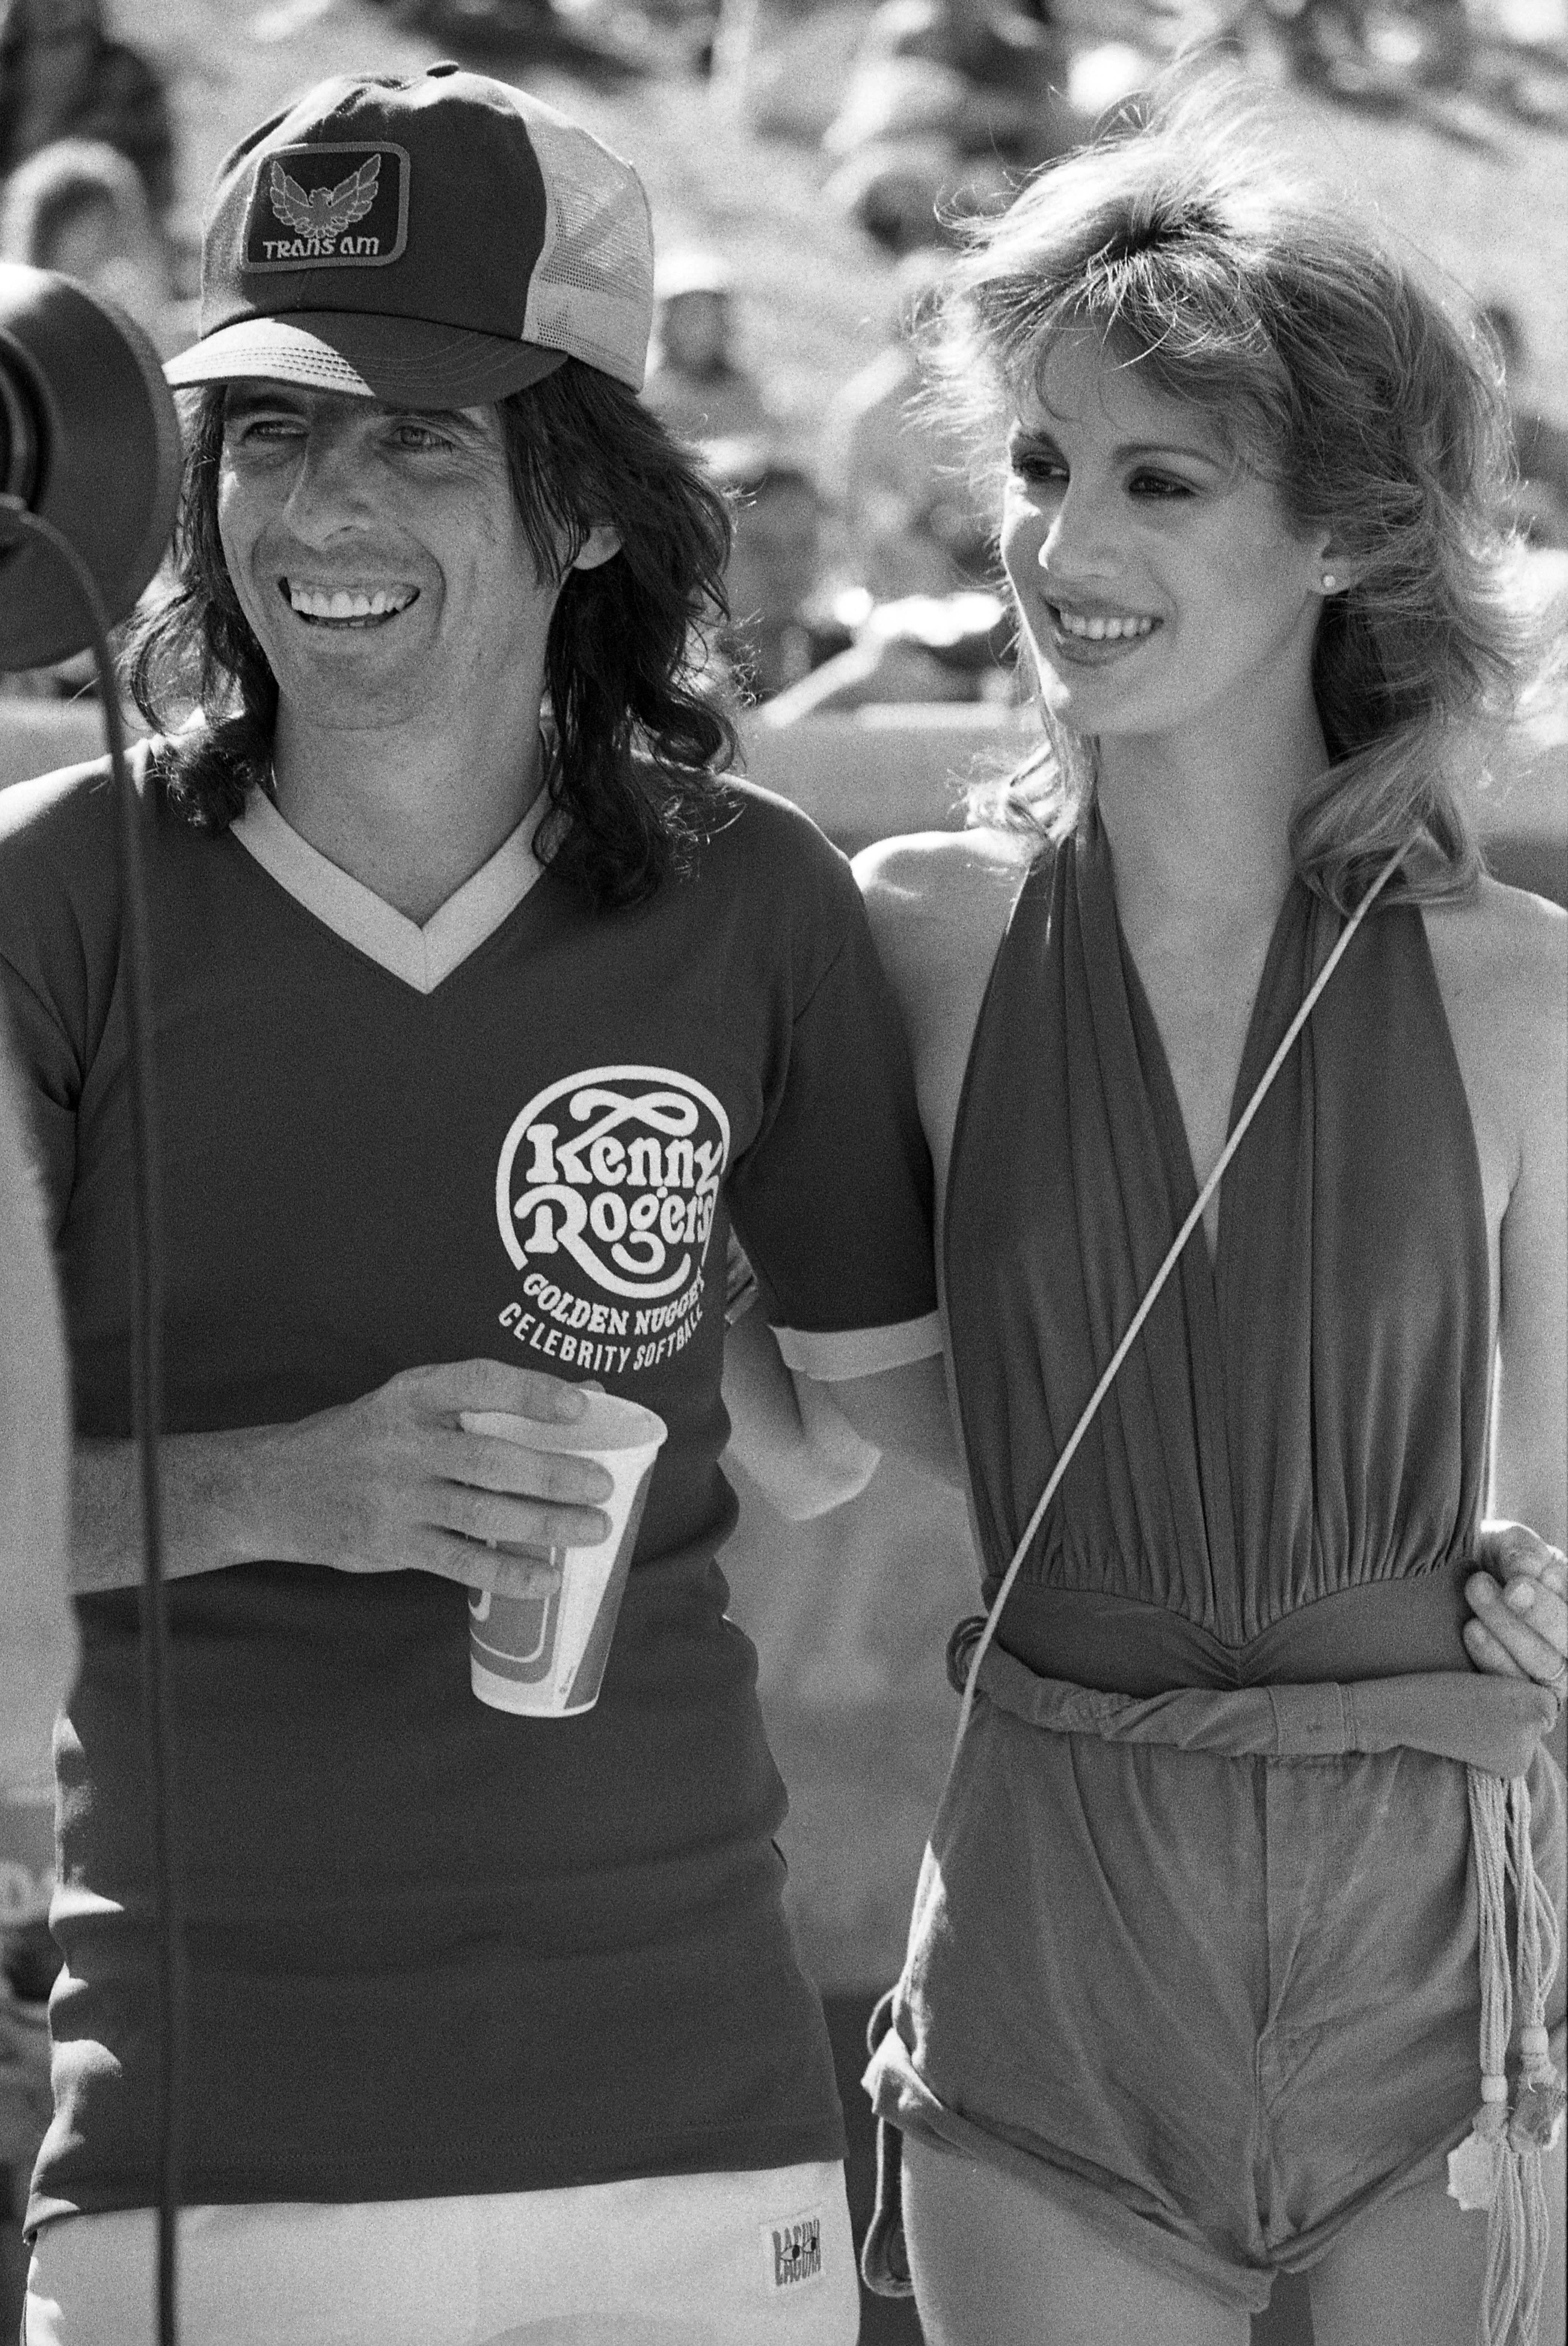 Alice Cooper and Sheryl Goddard at the Kenny Rogers Golden Nugget celebrity softball game in 1977 in Las Vegas, Nevada   Source: Getty Images